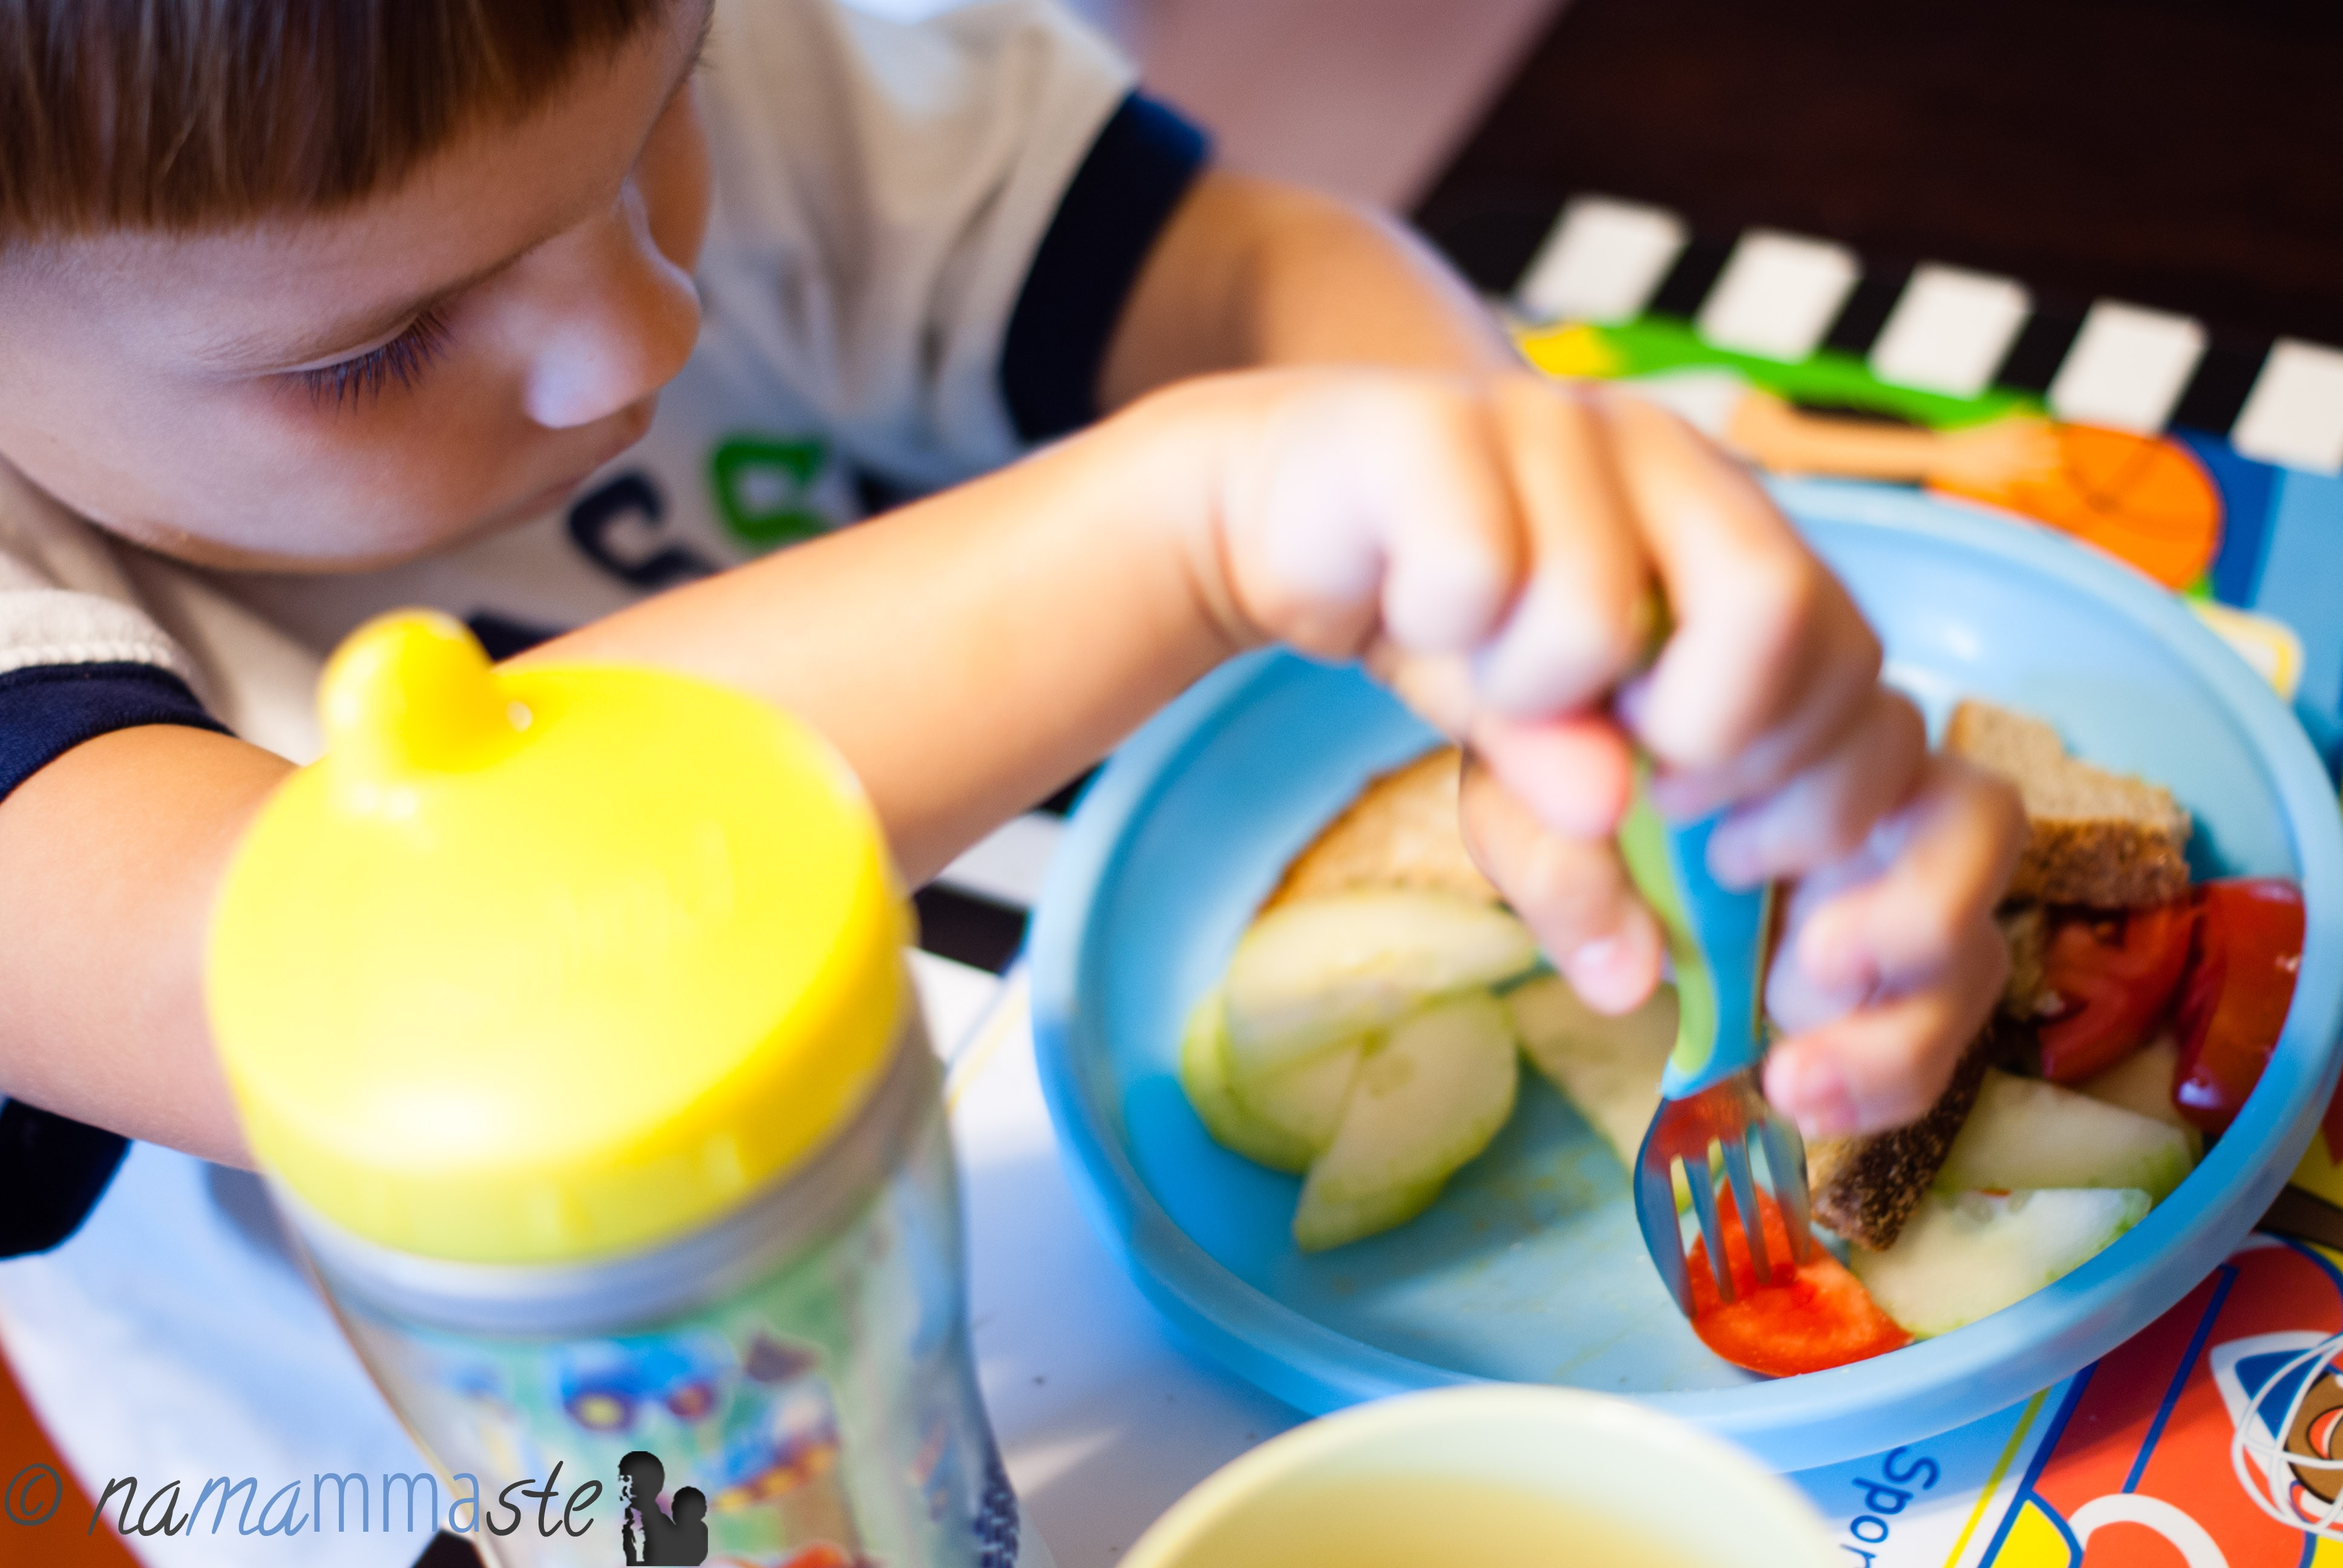 Who decided toddlers don't eat veggies?